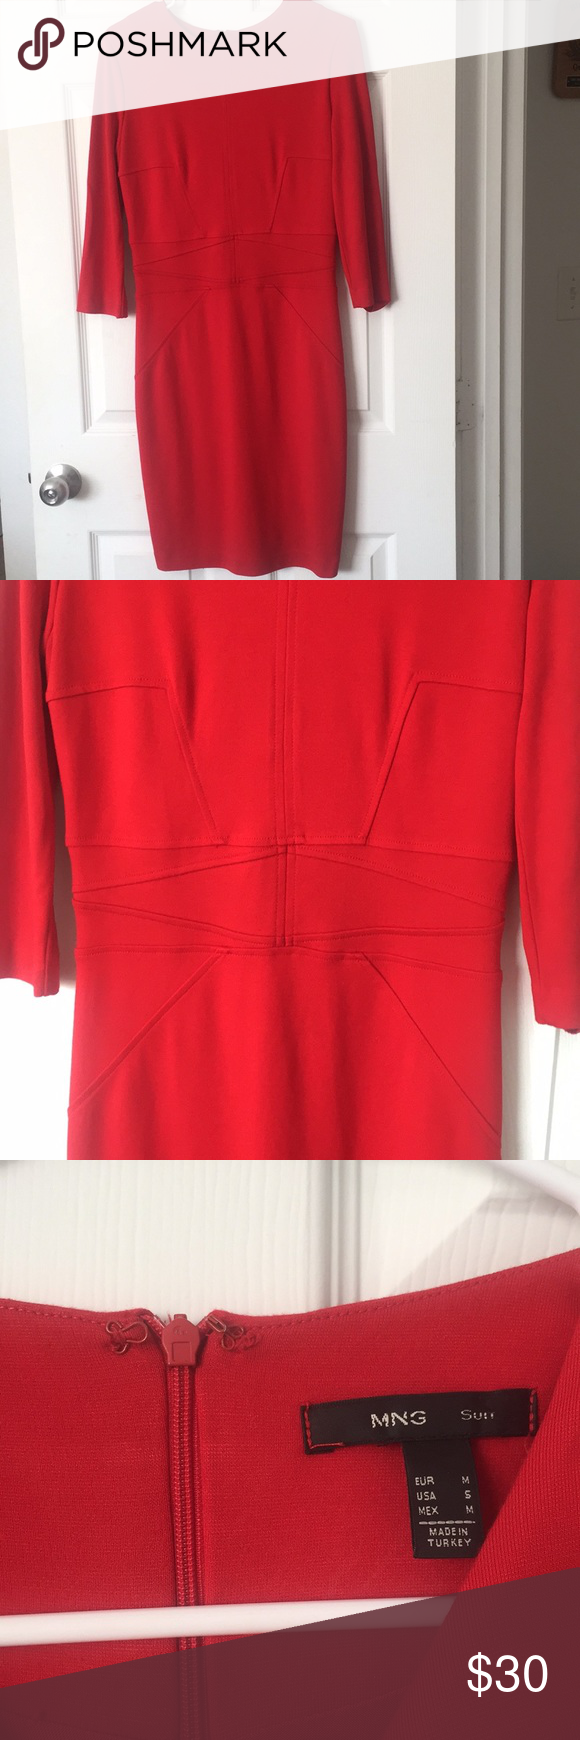 MNG red dress MNG suit Size small Made in Turkey Fits to the